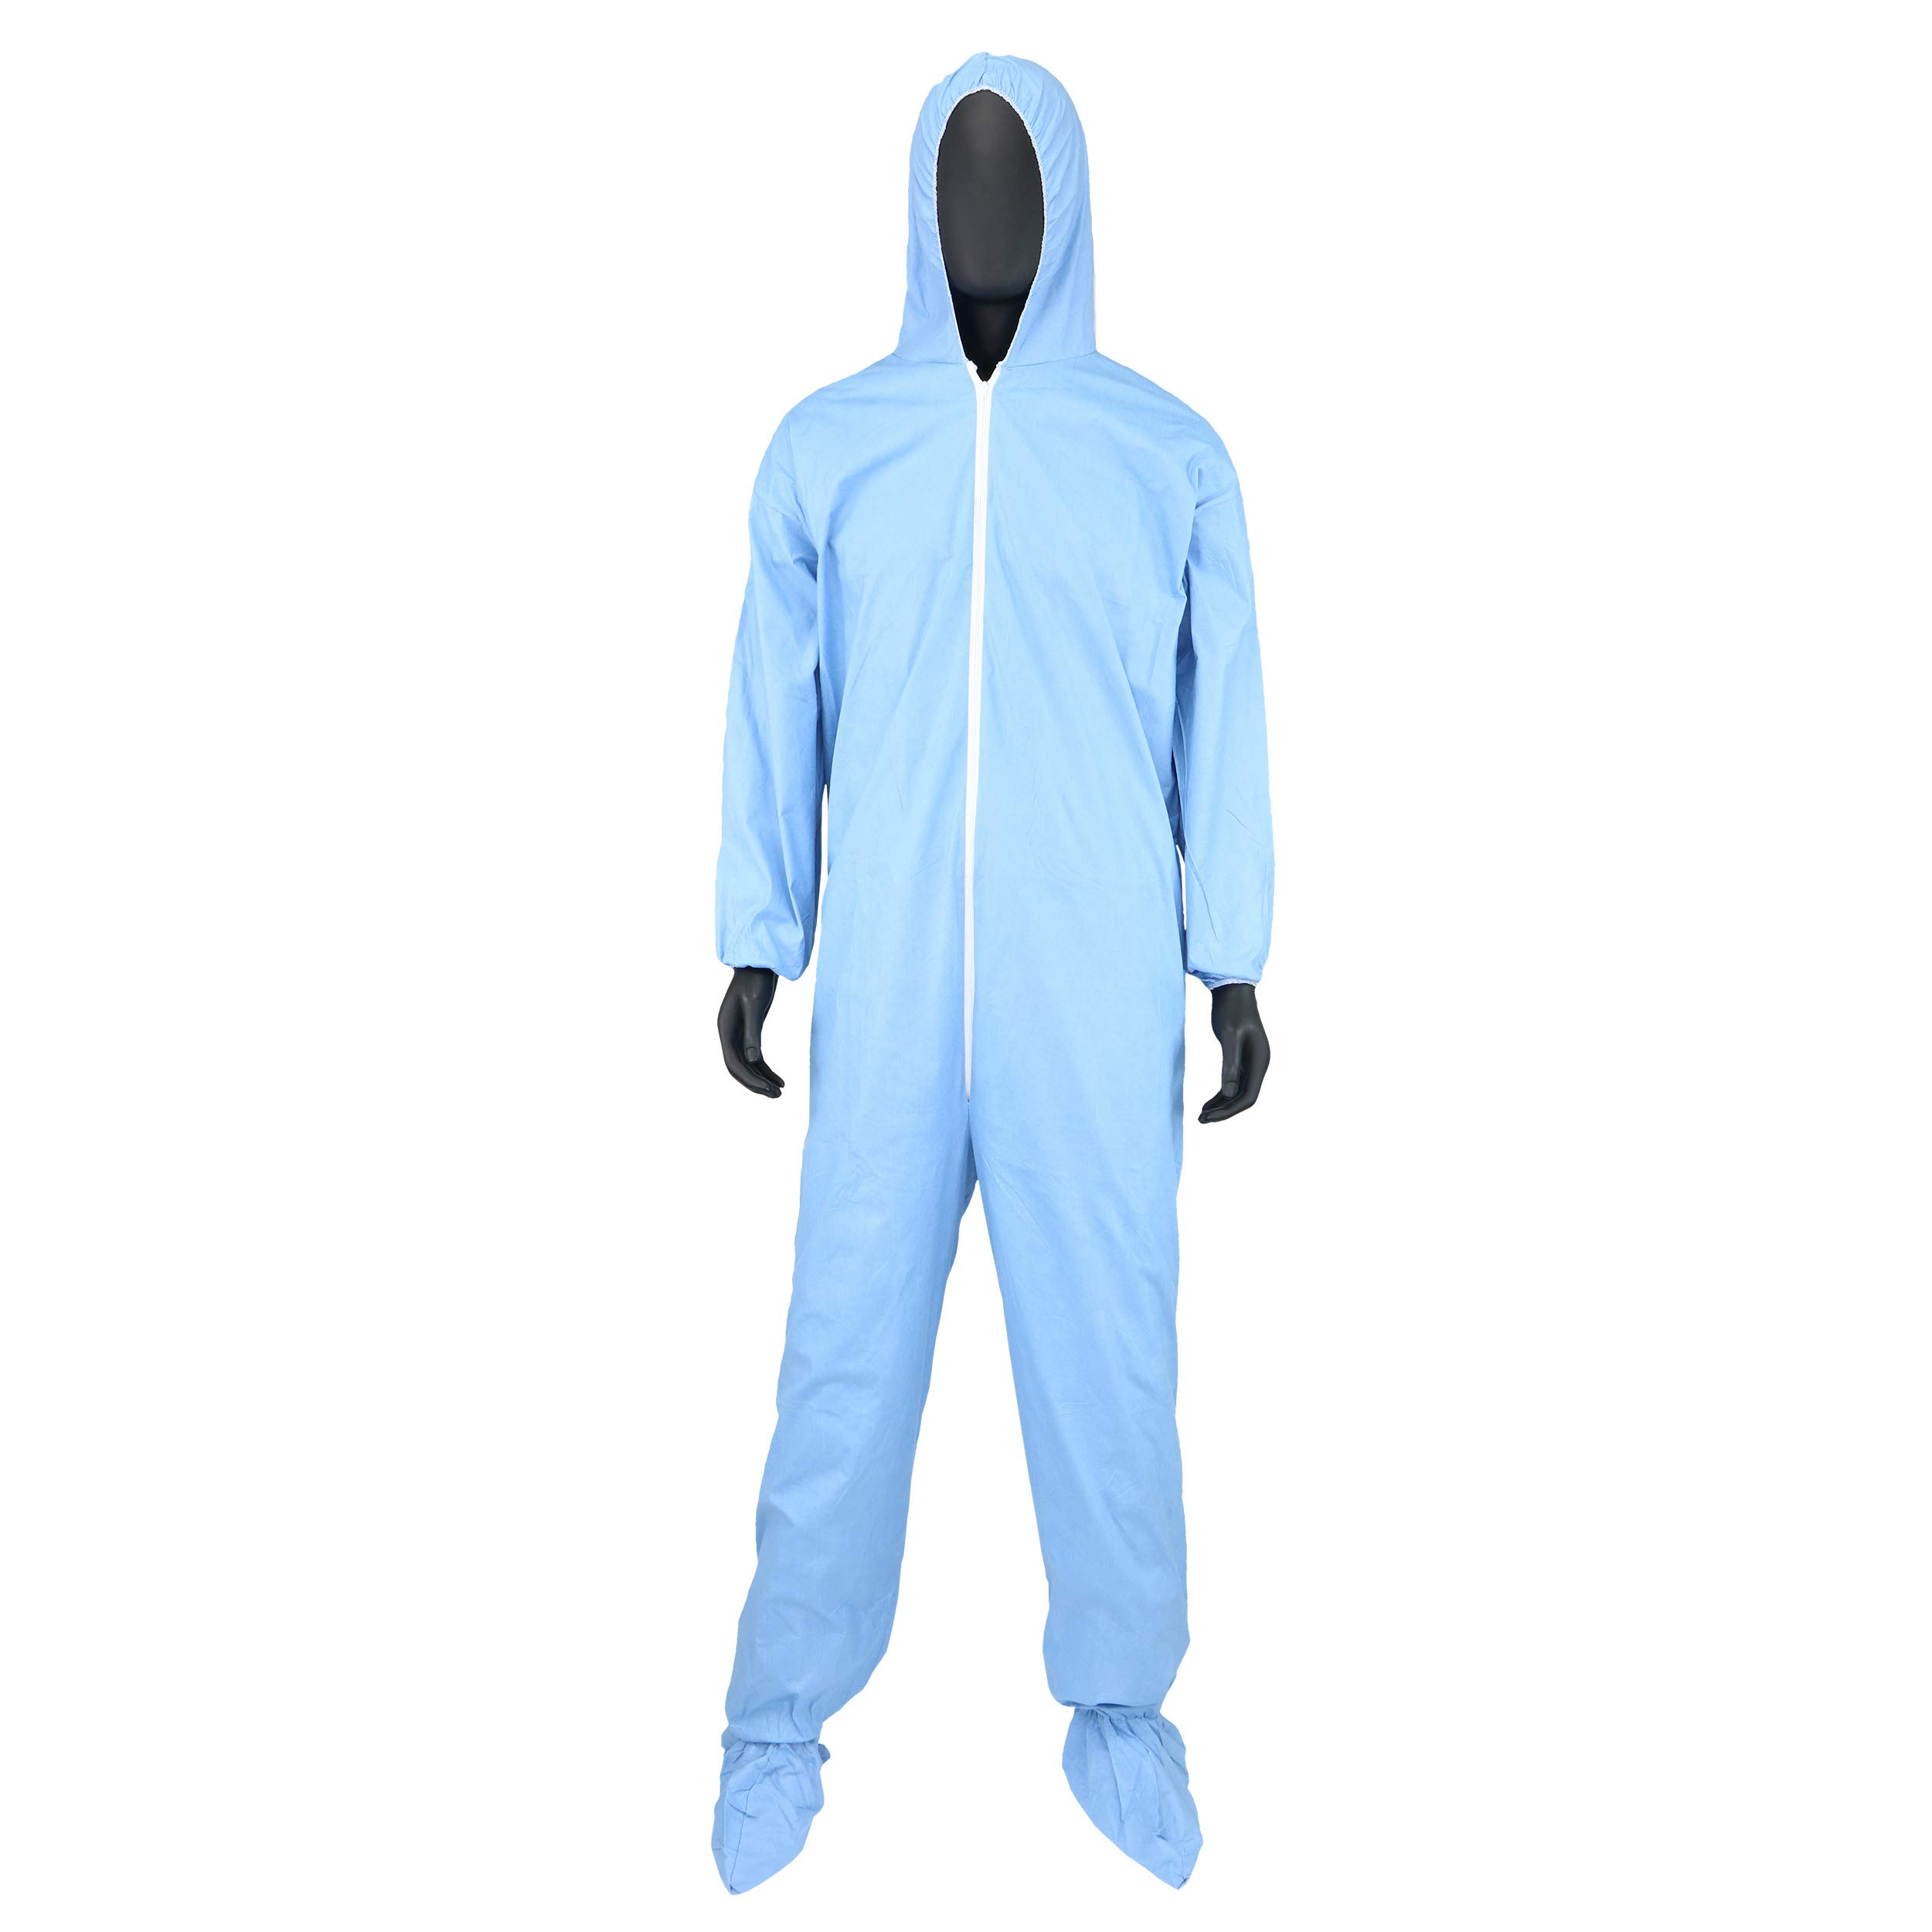 West Chester 3109/XL Posi FR Coverall Hood, Boot, Elastic Wrist & Ankle, XL, Blue (Box of 25)